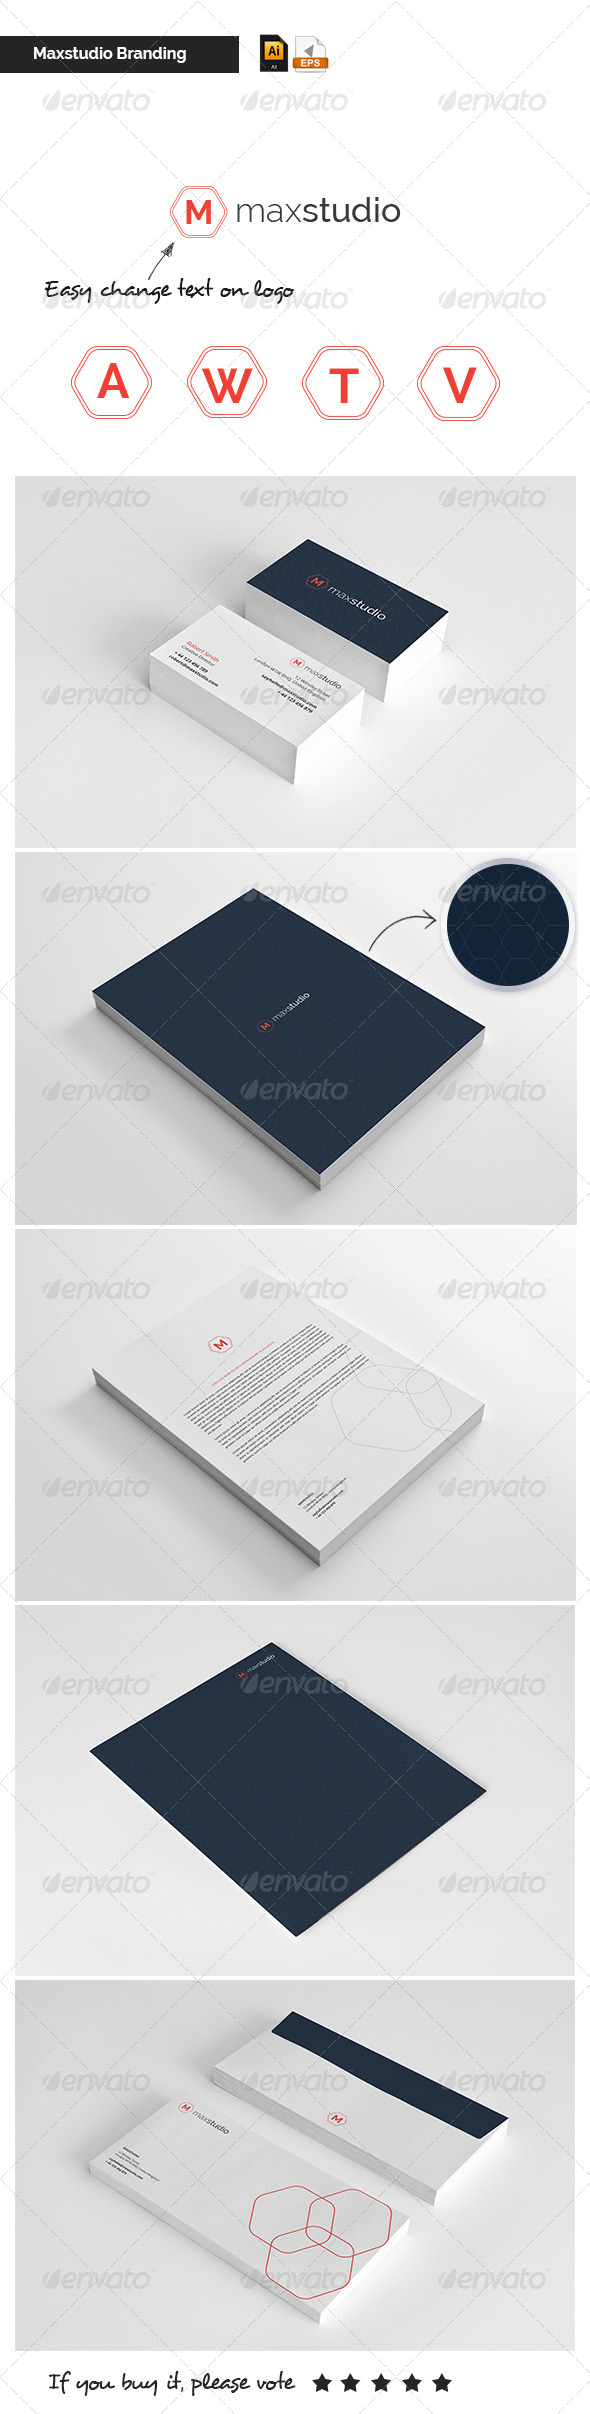 GraphicRiver Stationary & Brand Identity Maxstudio 5226295